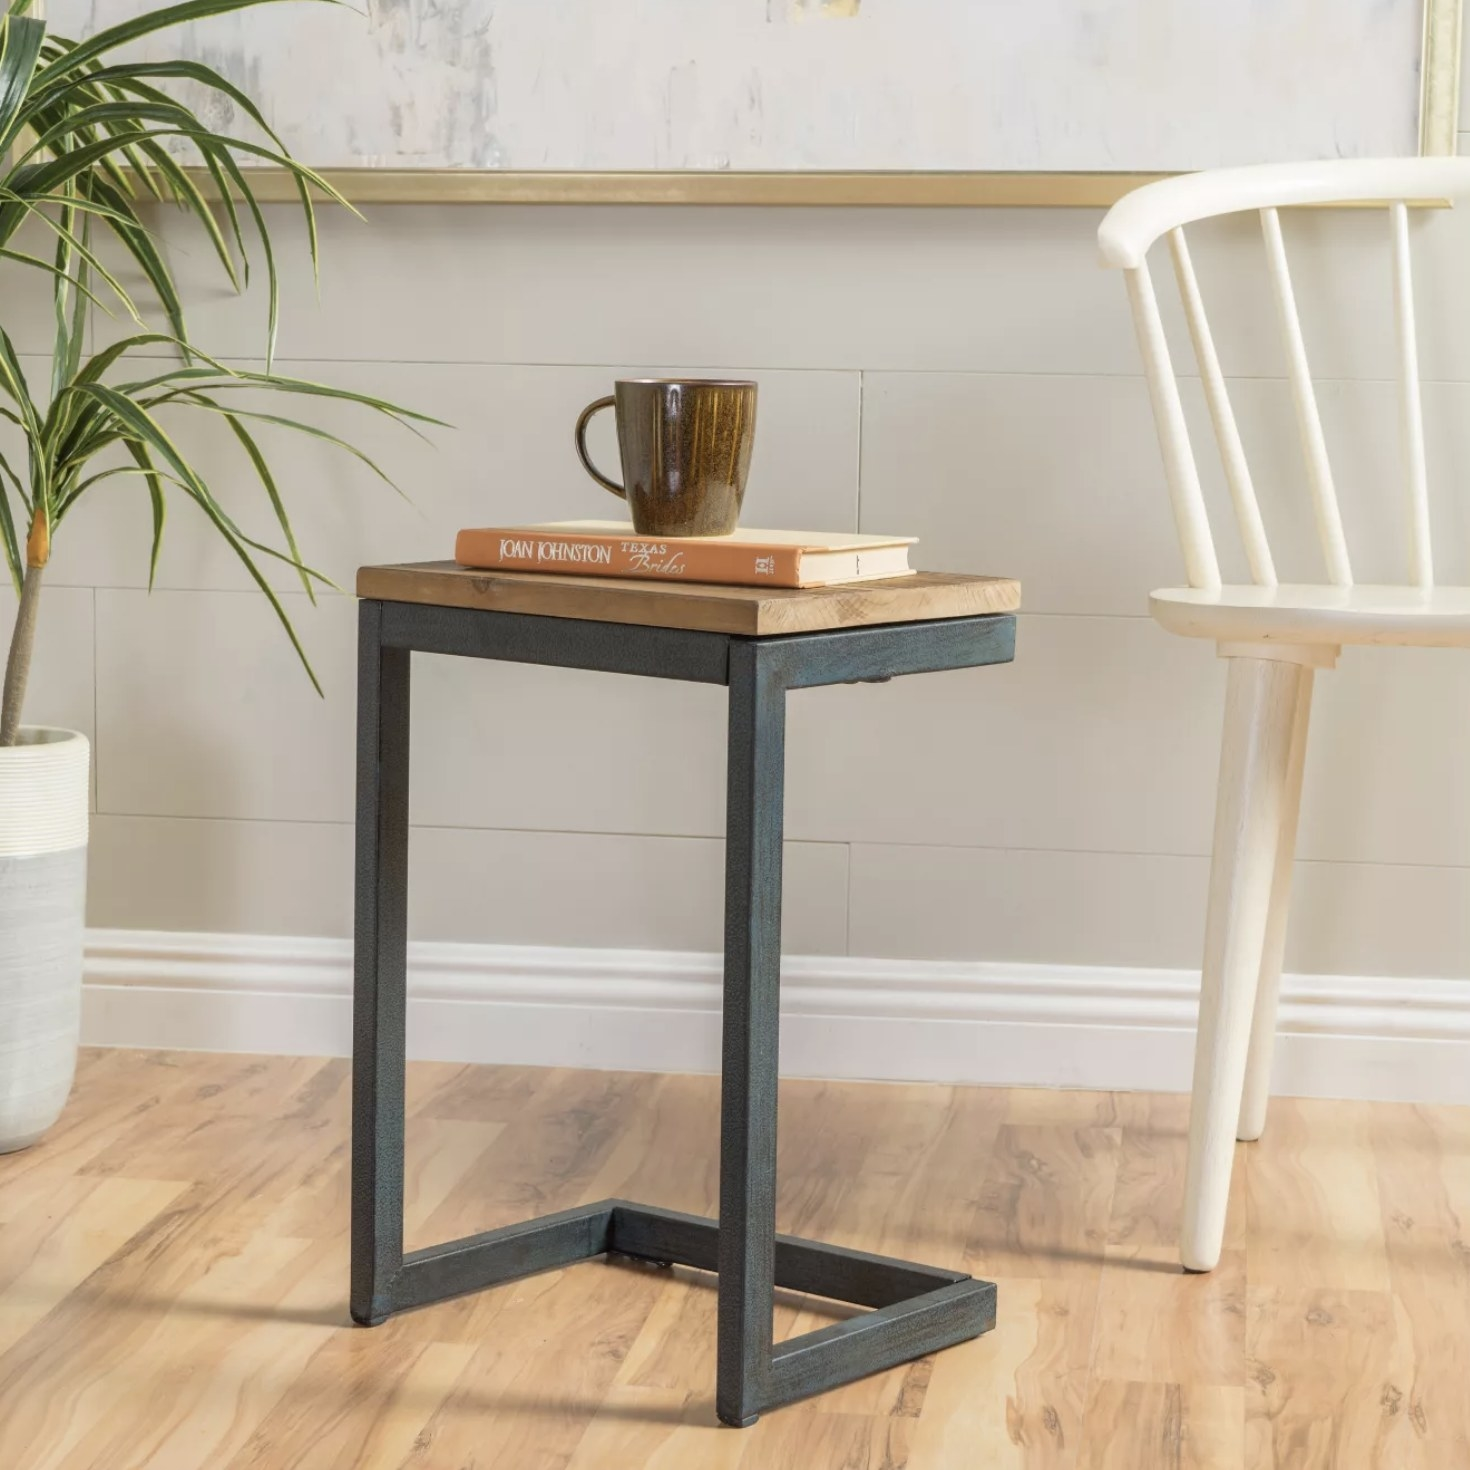 A c-table with an iron frame and wooden tabletop sits in a living space with a book and mug on top